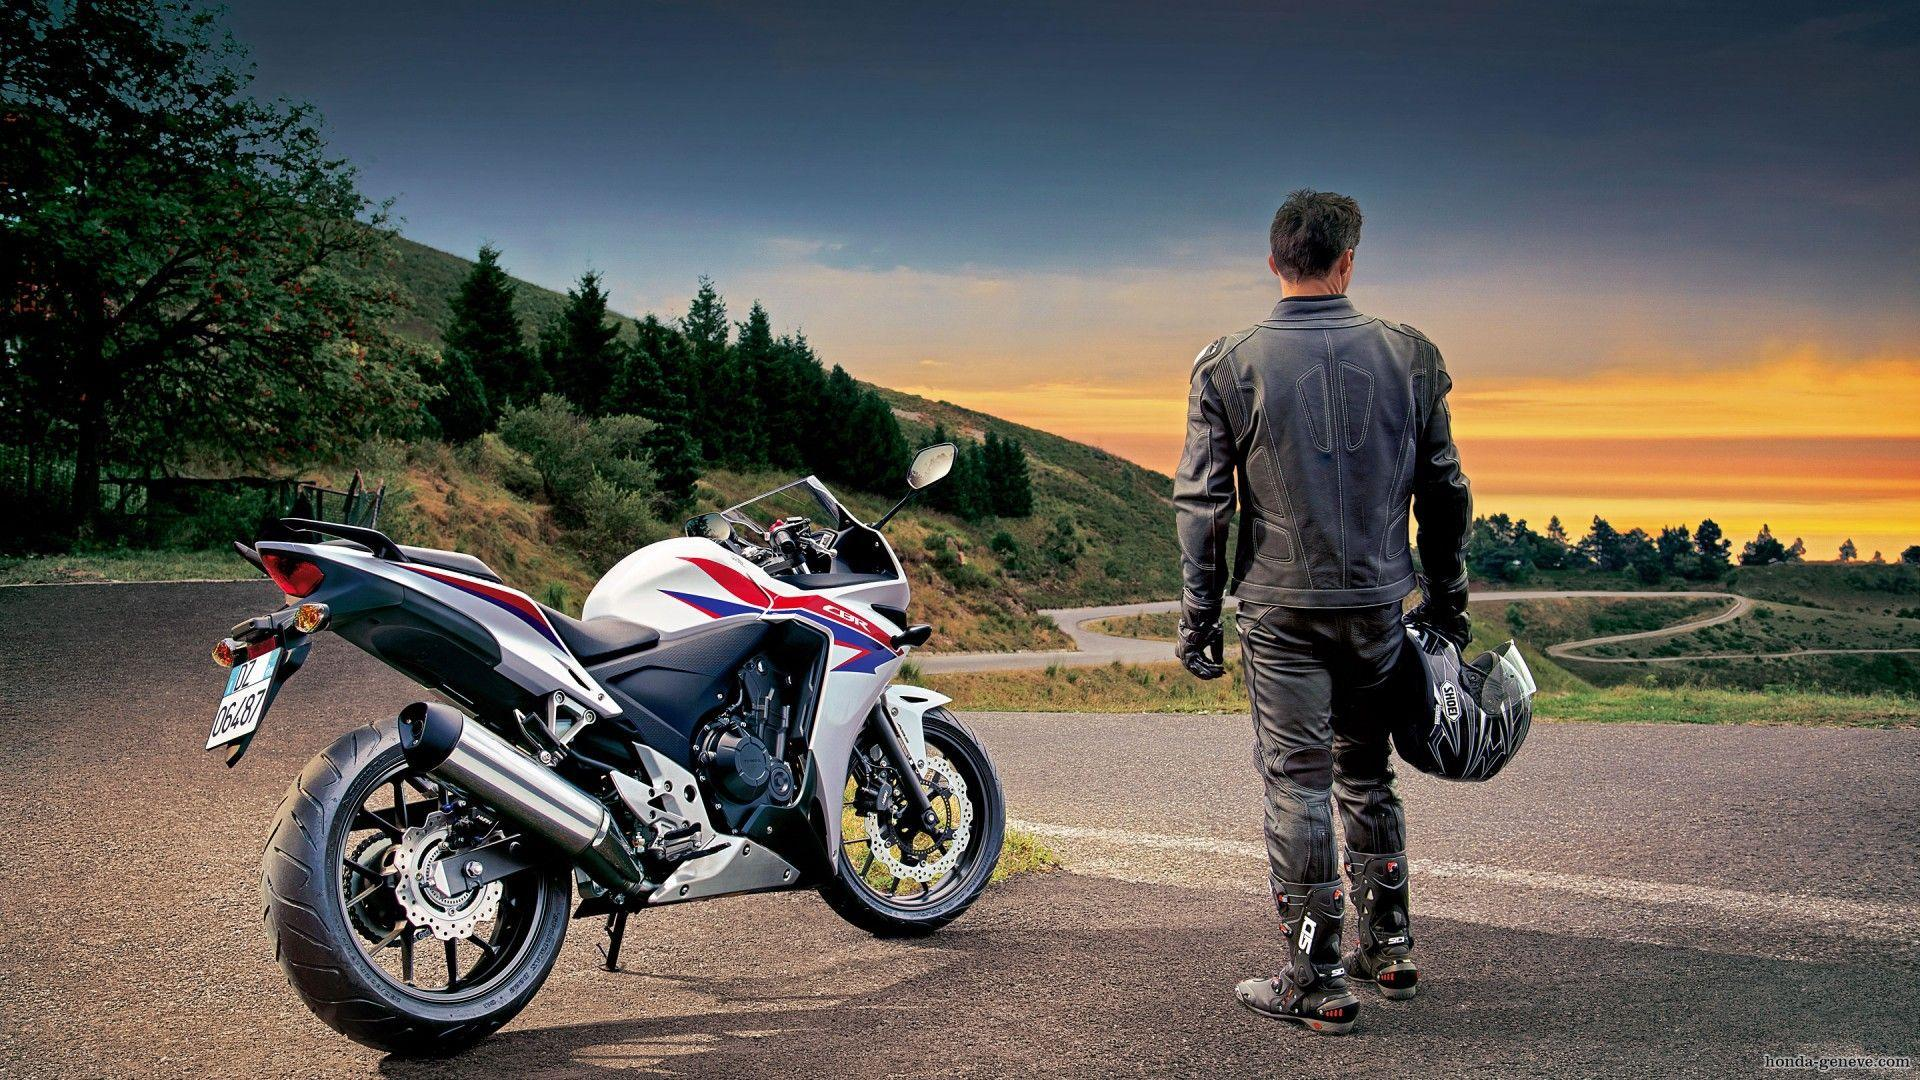 Honda CBR 500R Full HD Wallpaper and Background | 1920x1080 | ID ...